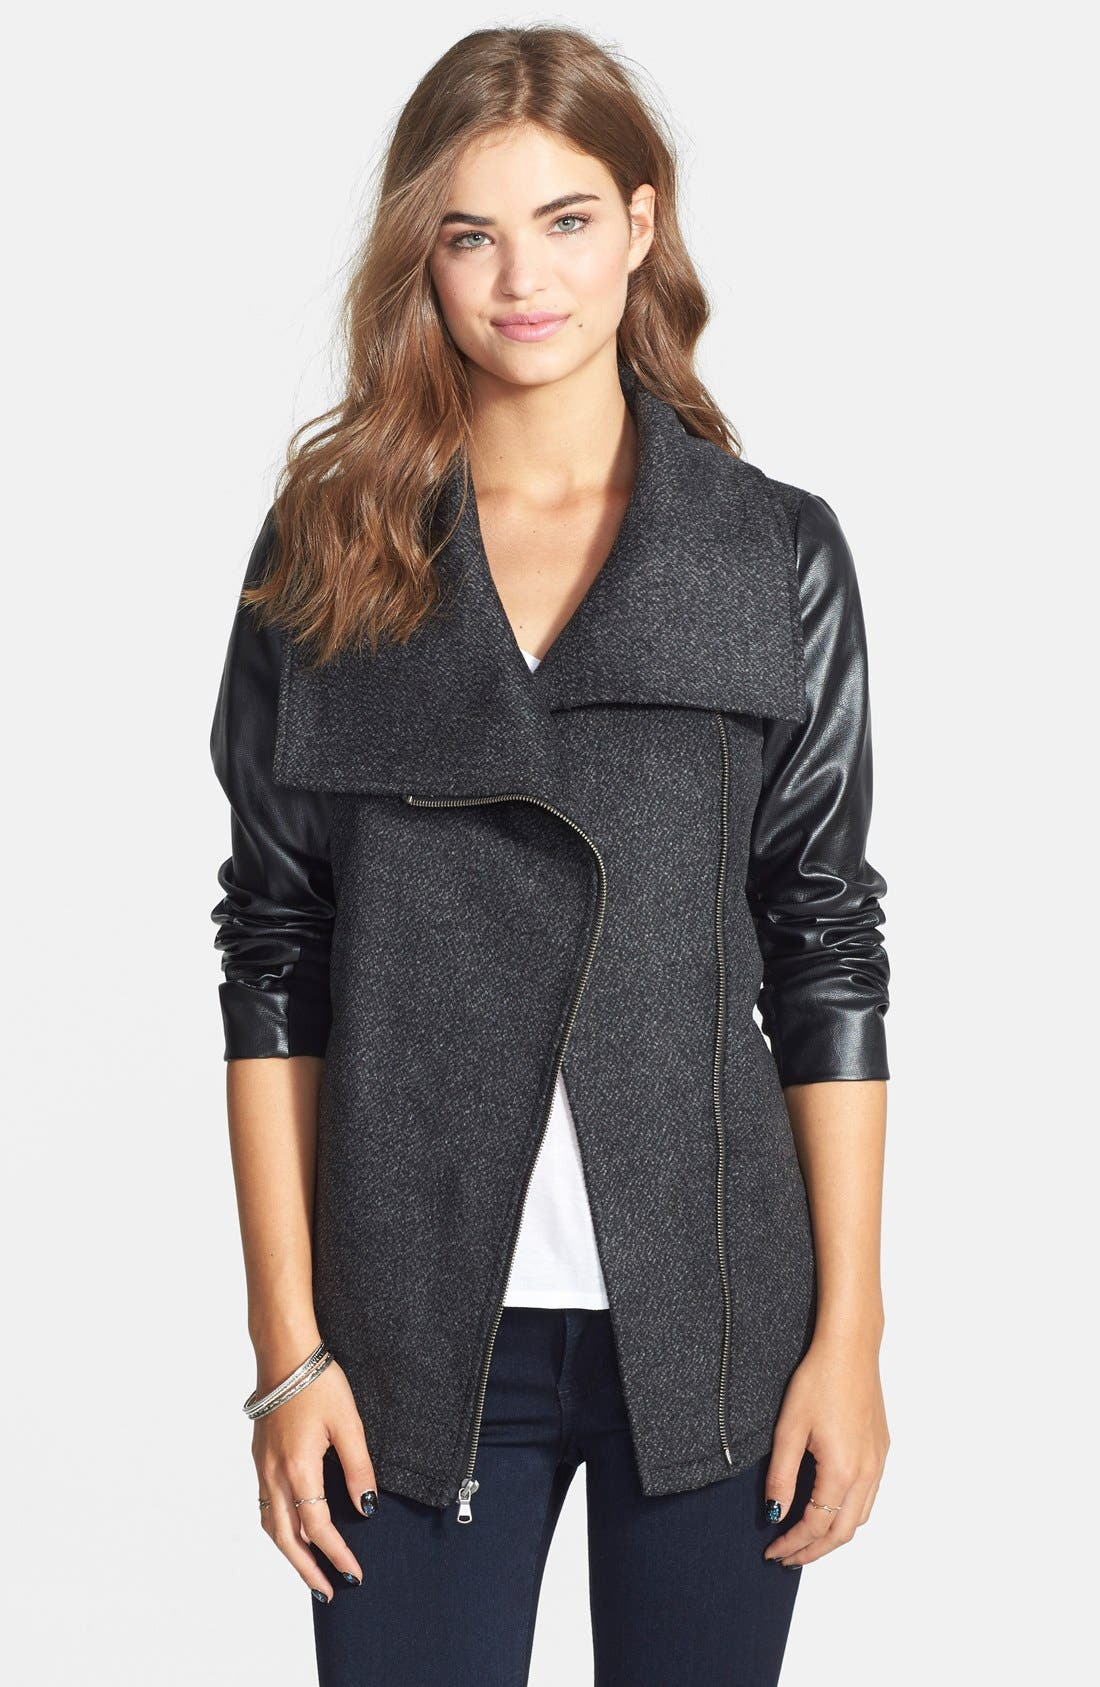 Alternate Image 1 Selected - Celebrity Pink Asymmetrical Front Mixed Media Jacket (Juniors)